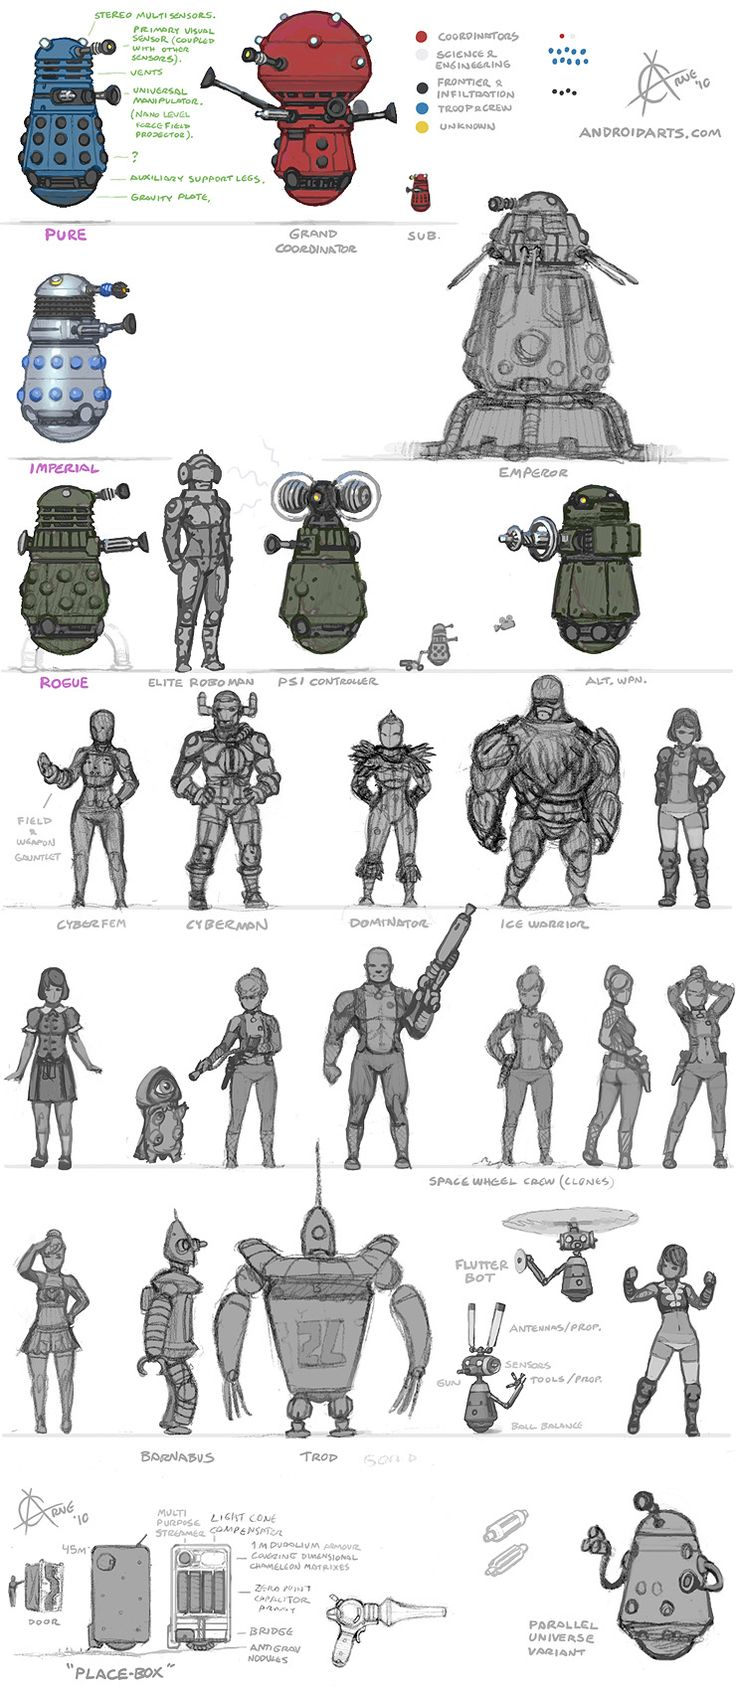 Doctor Who Cybermen, Dalek, Ice Warrior, Trod rough concepts. If only BBC had 10x their budget...